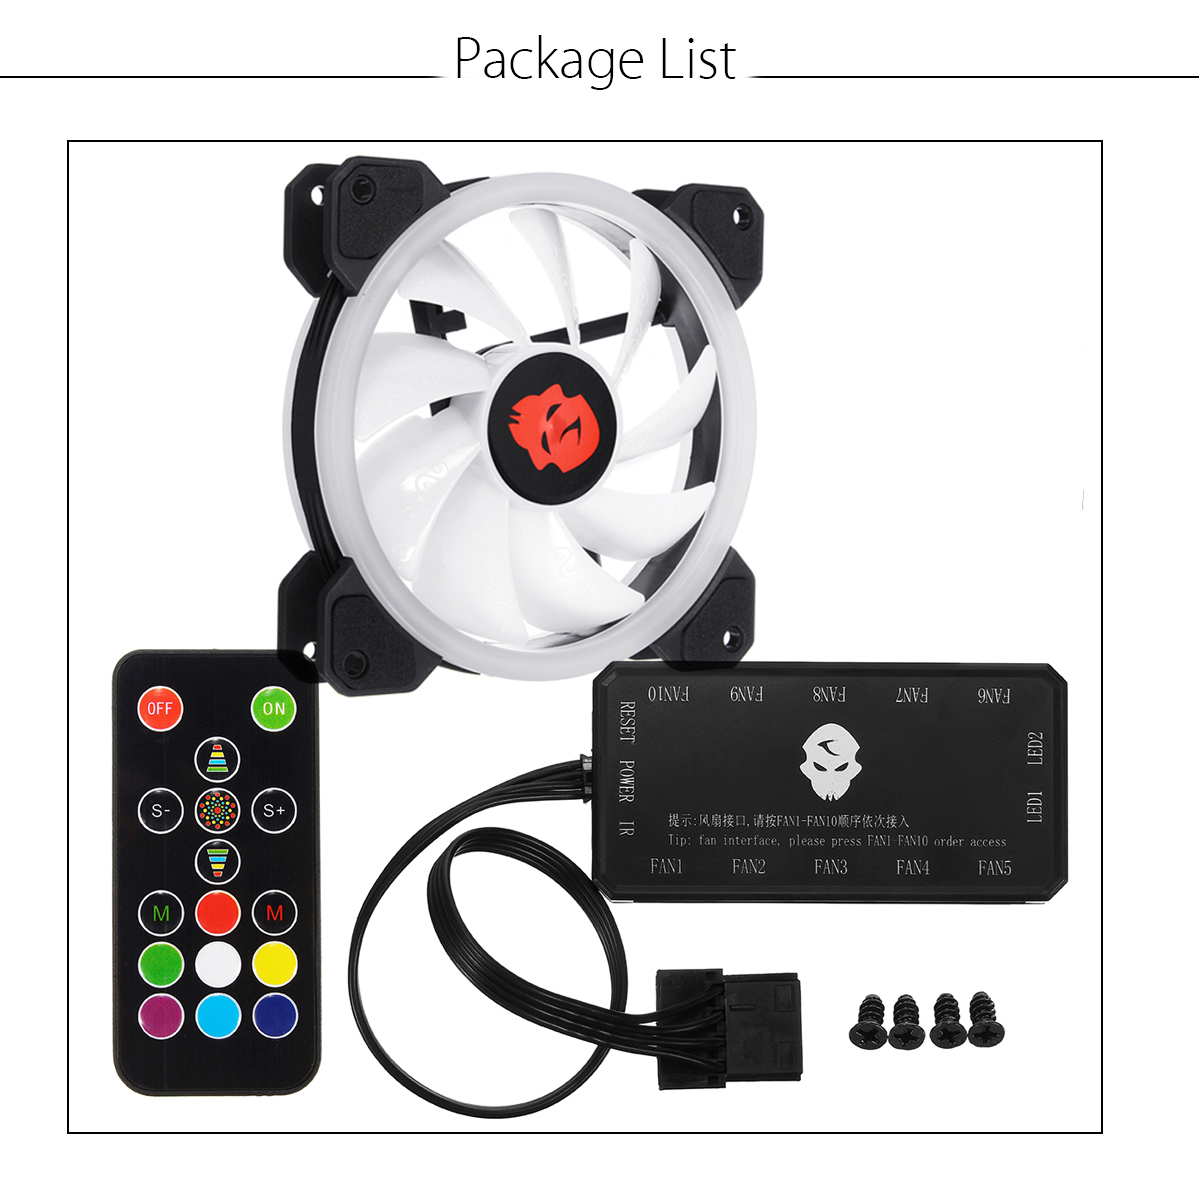 Coolmoon 1pcs 120mm Adjustable Rgb Led Light Computer Case Pc Infrared Remote Control Tester P Marian Detectors Cooling Fan With Ir Controller